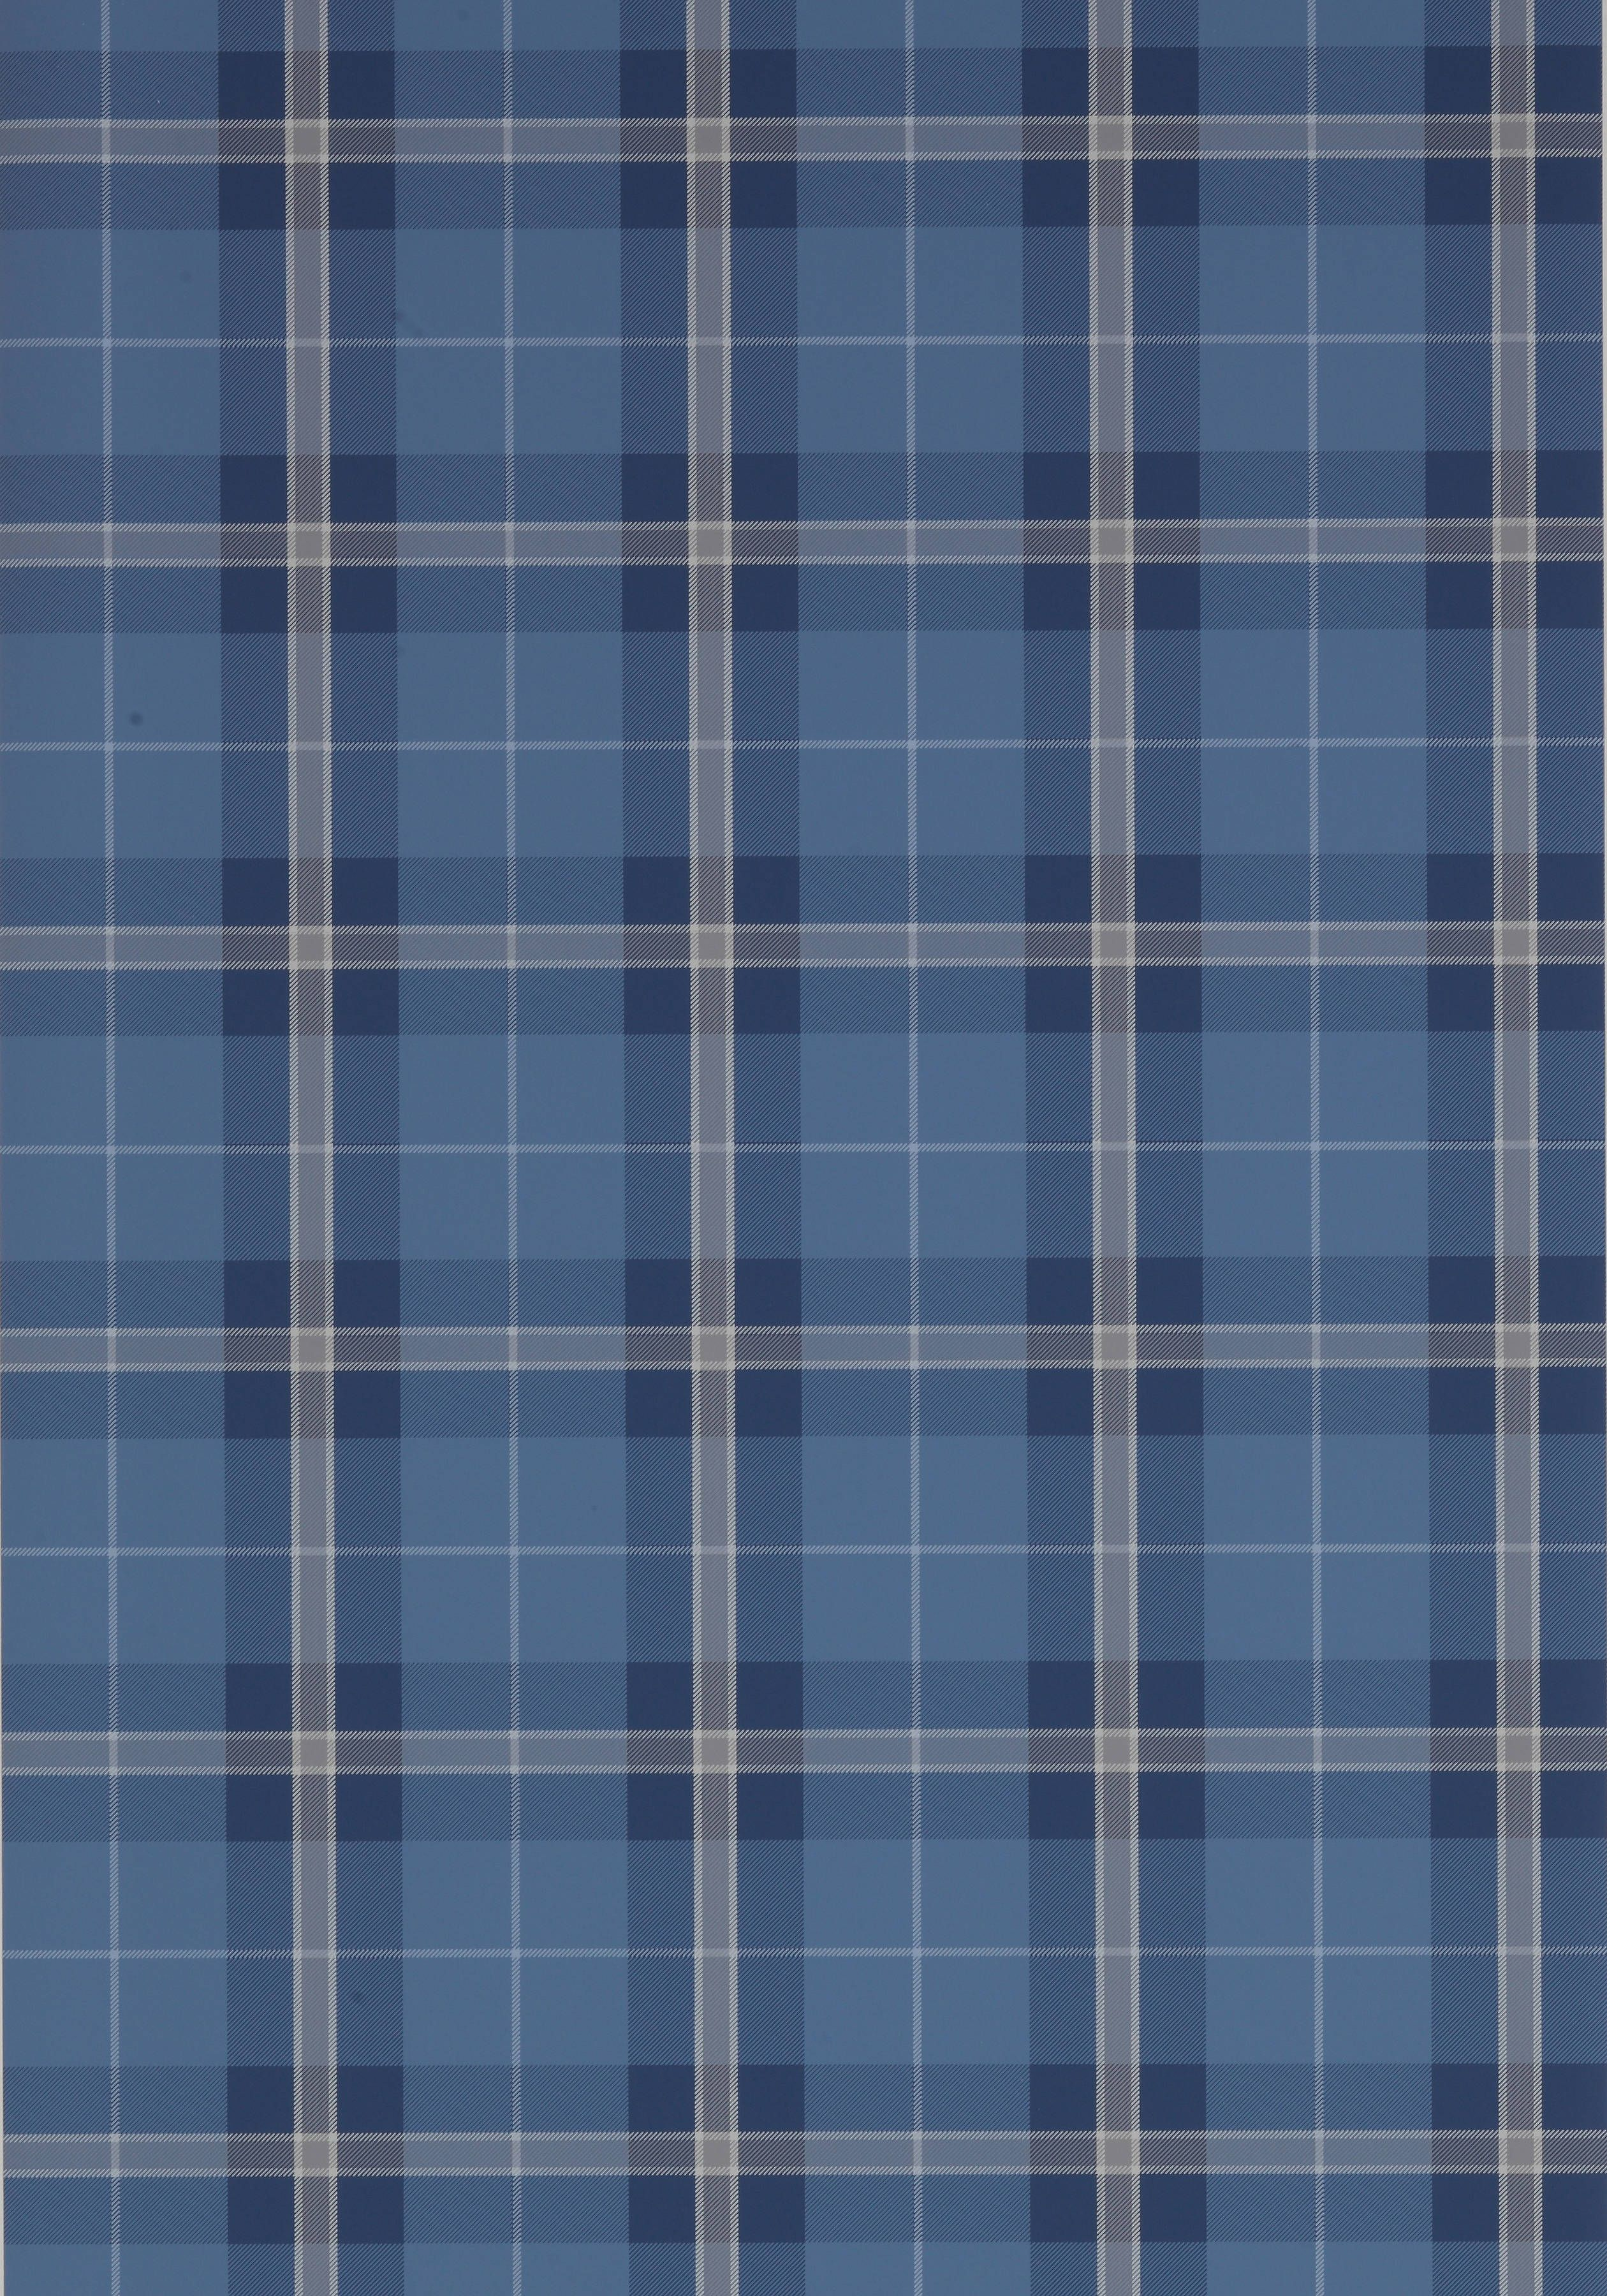 WINSLOW PLAID, Navy, T1030, Collection Menswear Resource